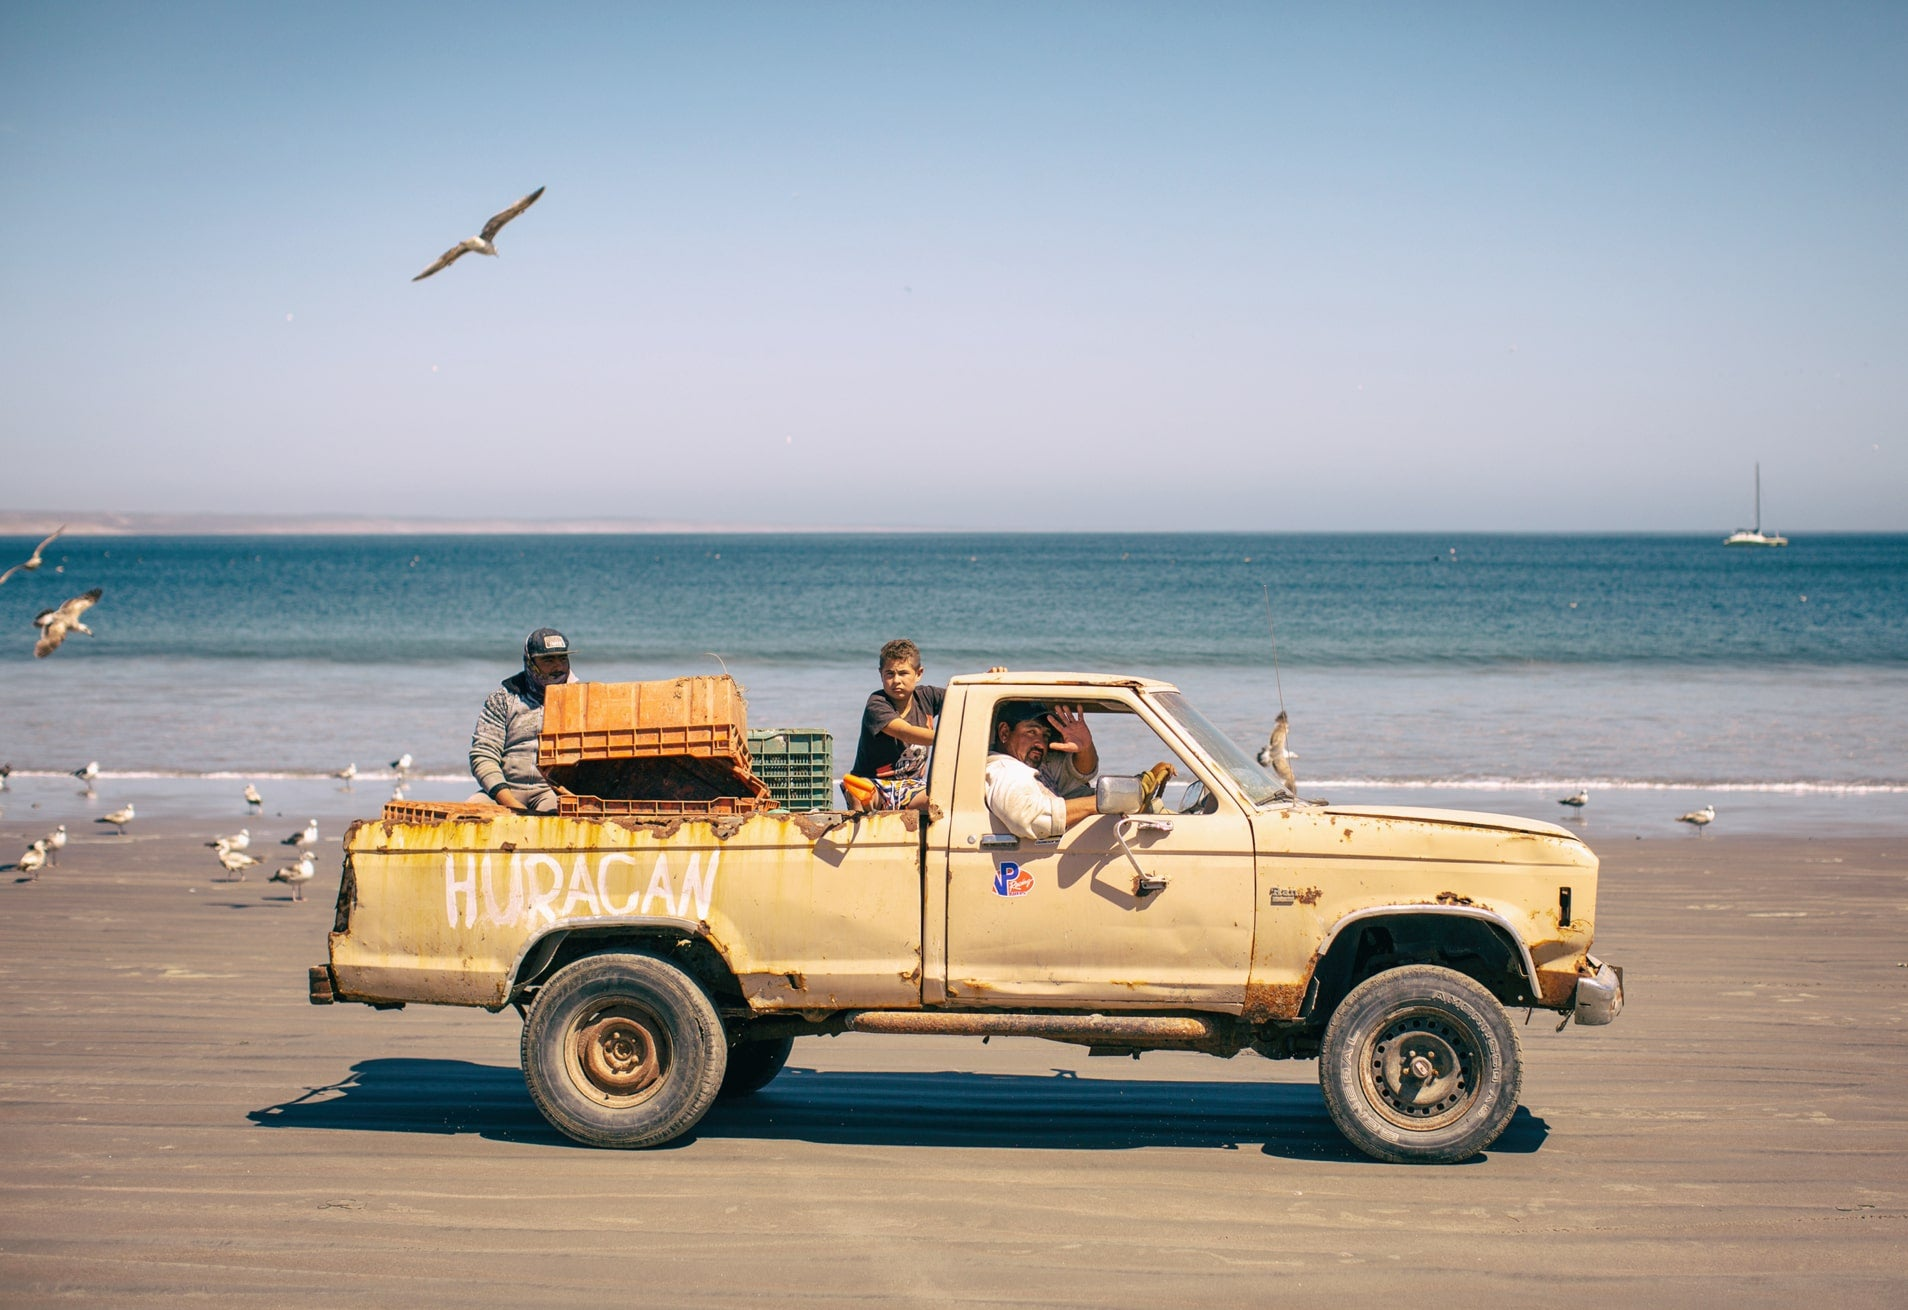 Men driving old truck called Huracan down Mexican beach